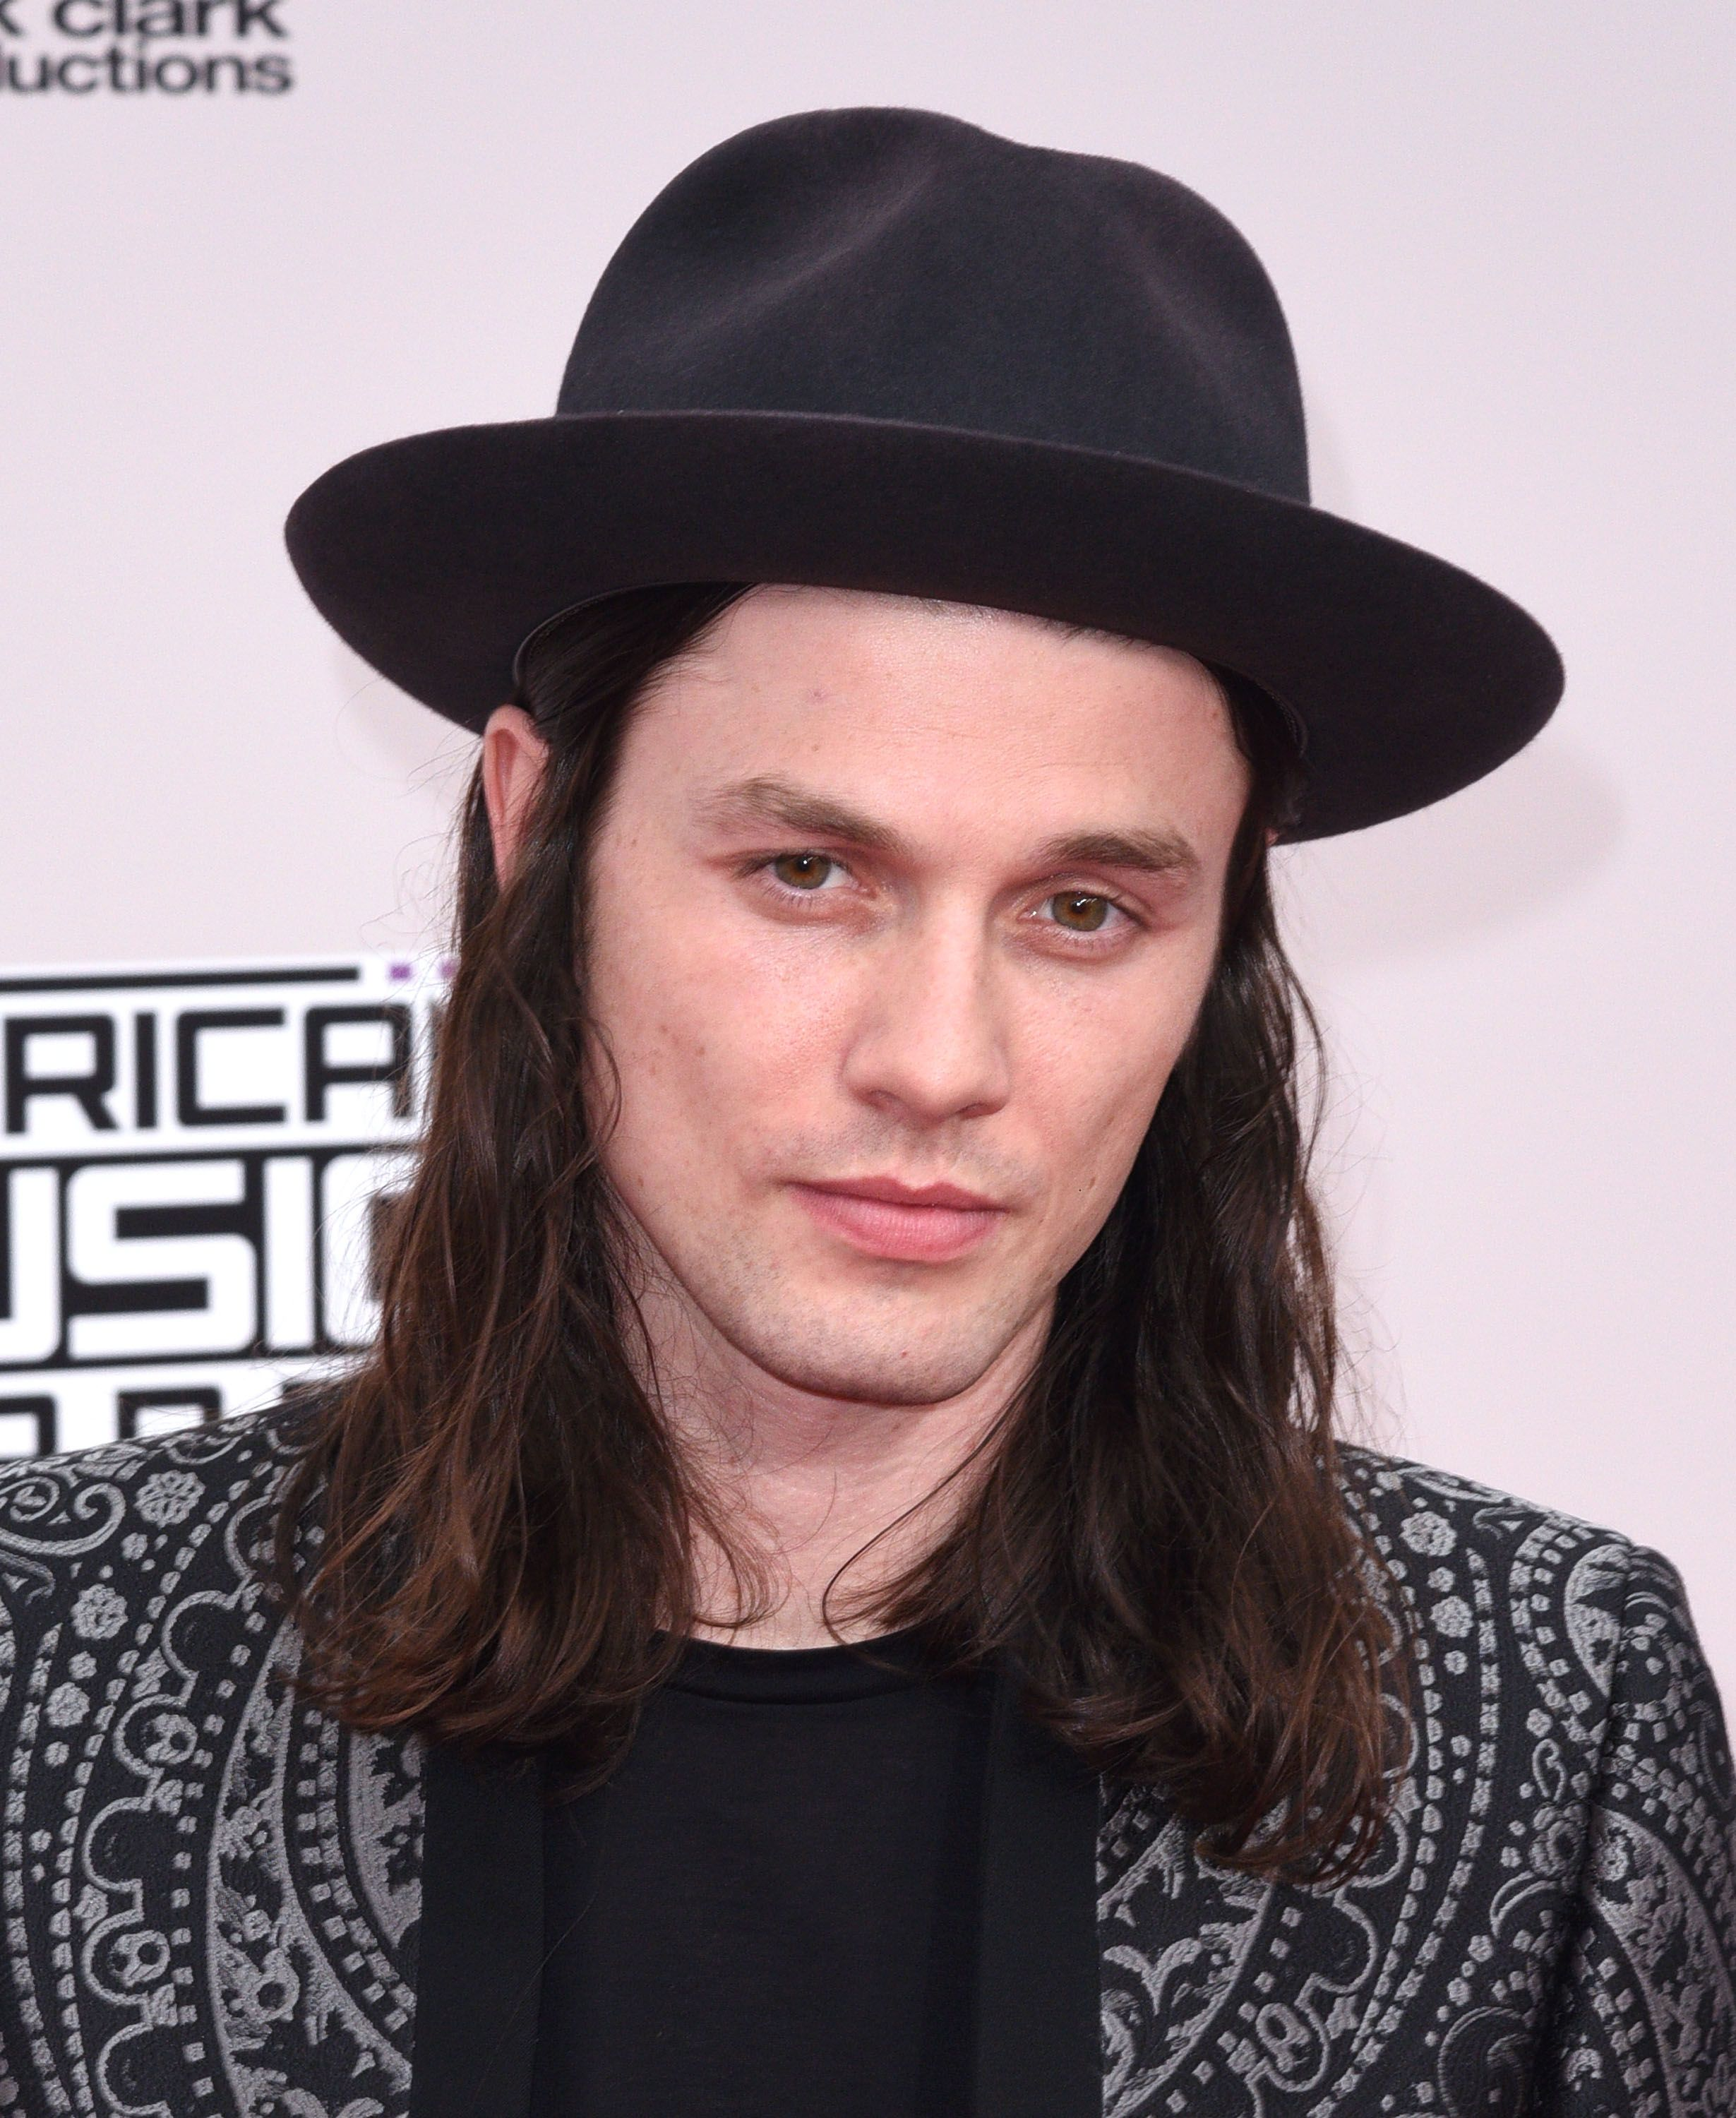 Icymi james bay has cut off all his hair and he looks so different winobraniefo Image collections